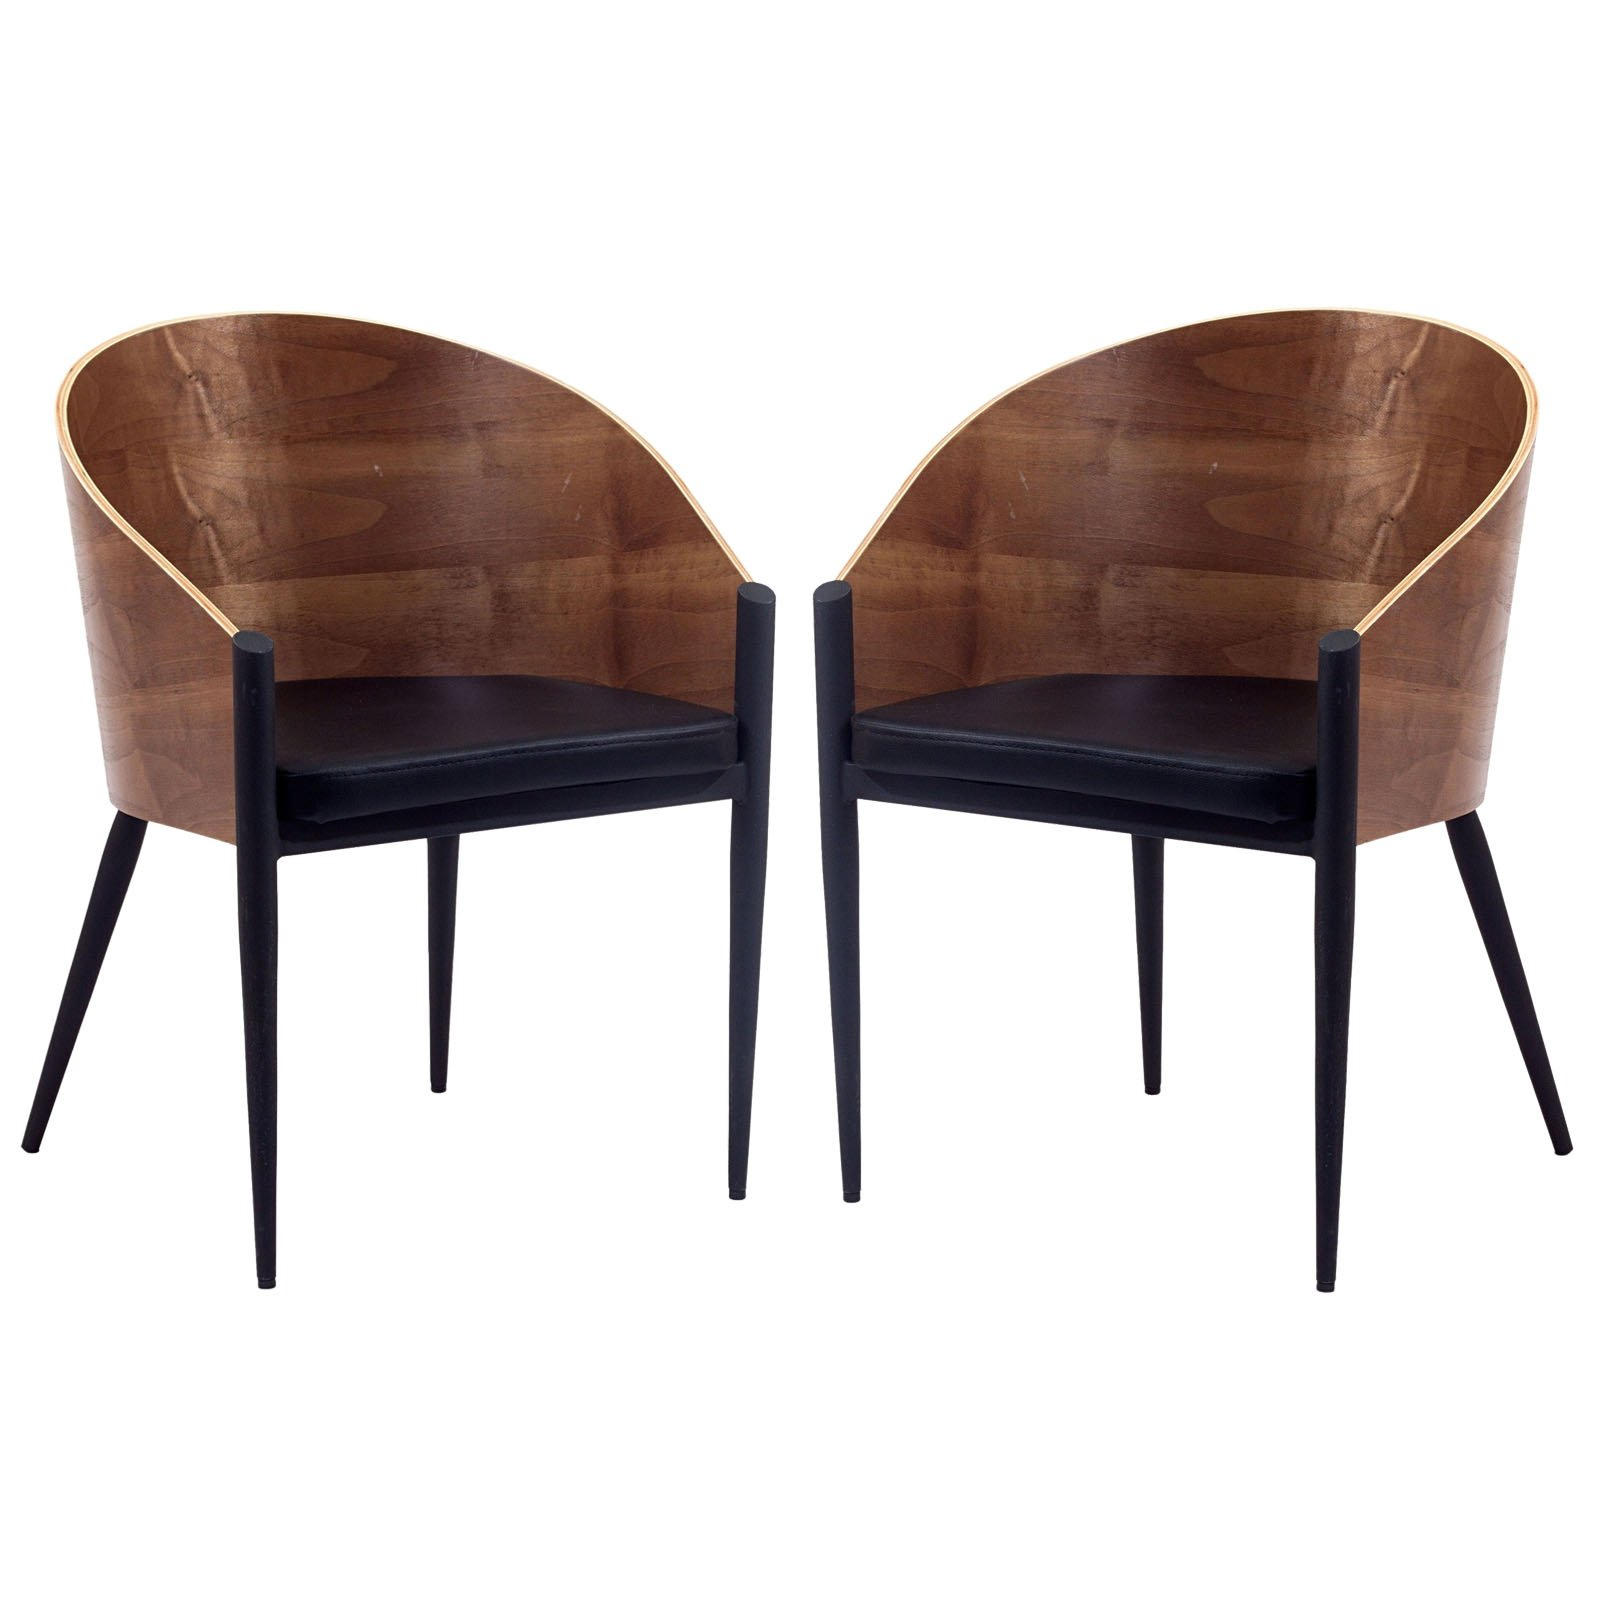 Modway Philippe Starck Style Pratfall Chair Set of 2